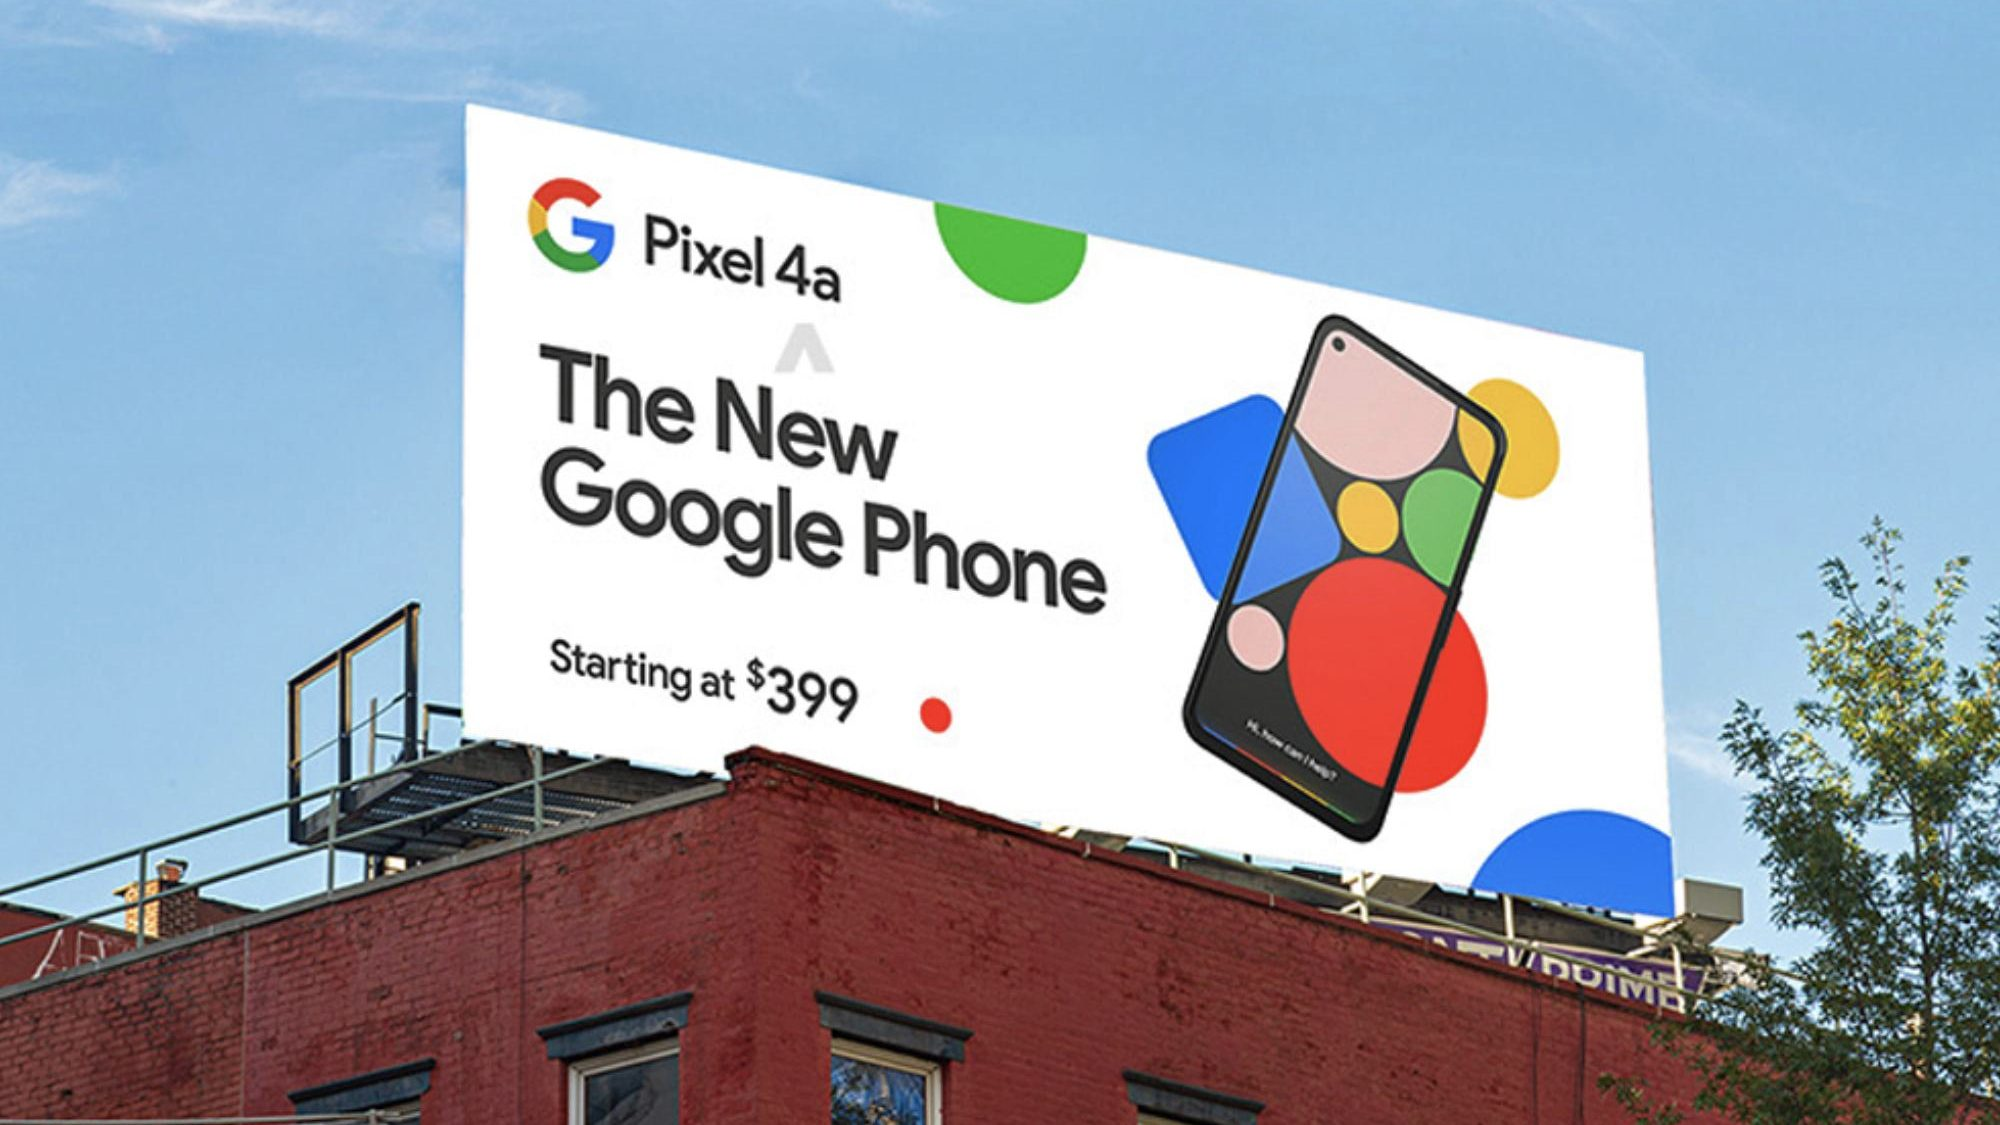 Google Pixel 4a leaked billboards confirm $399 starting price